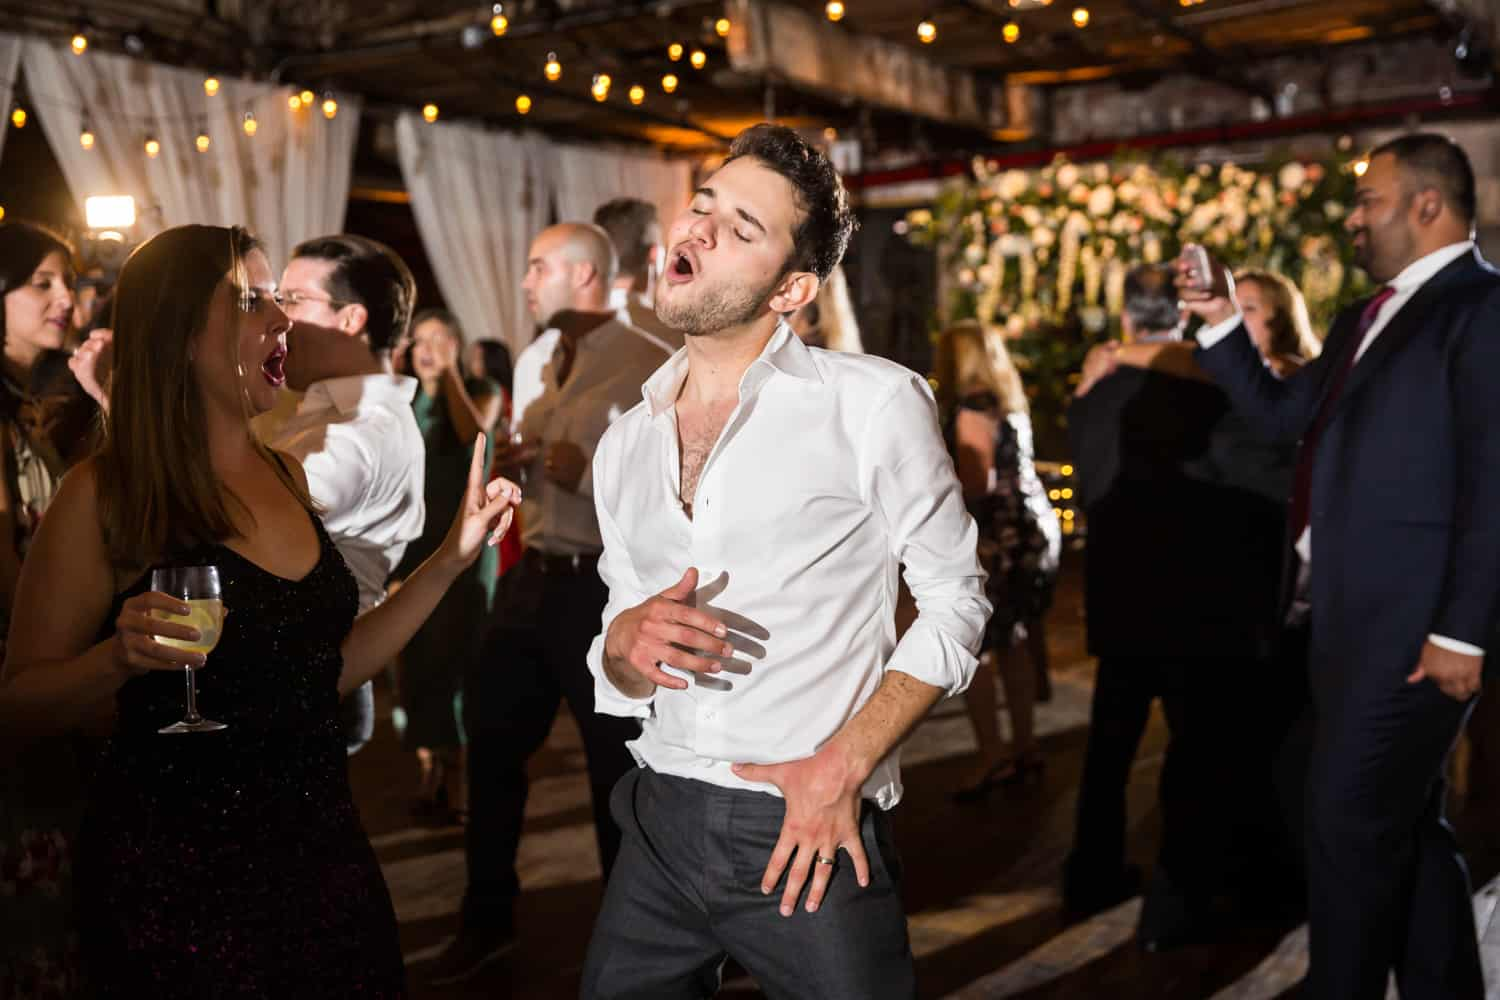 Greenpoint Loft wedding photos of groom dancing with guests